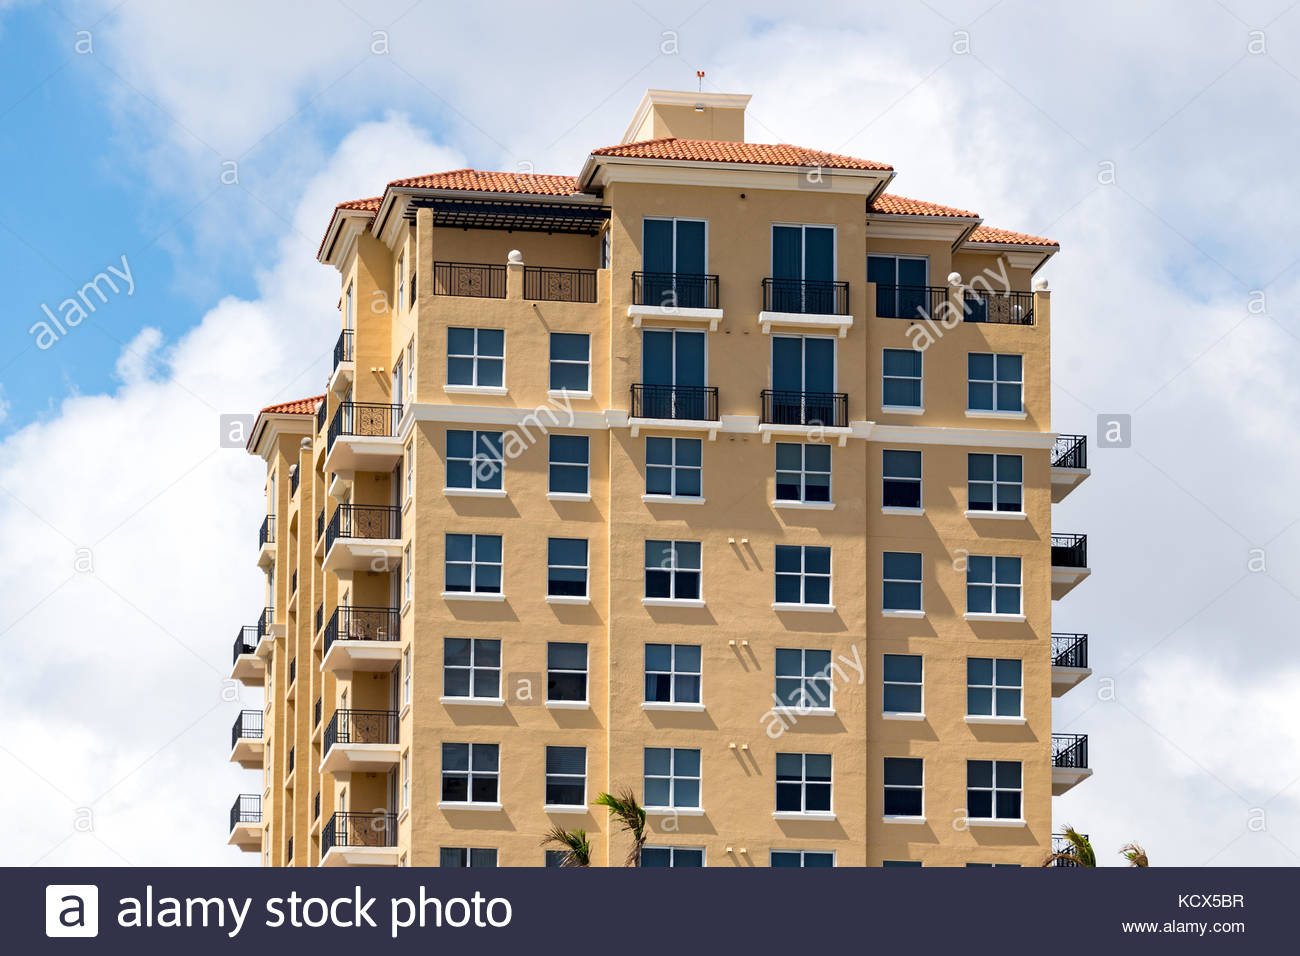 Mediterranean revival architecture in buildings of Coral Gables, southwest of the downtown district. Stock Photo